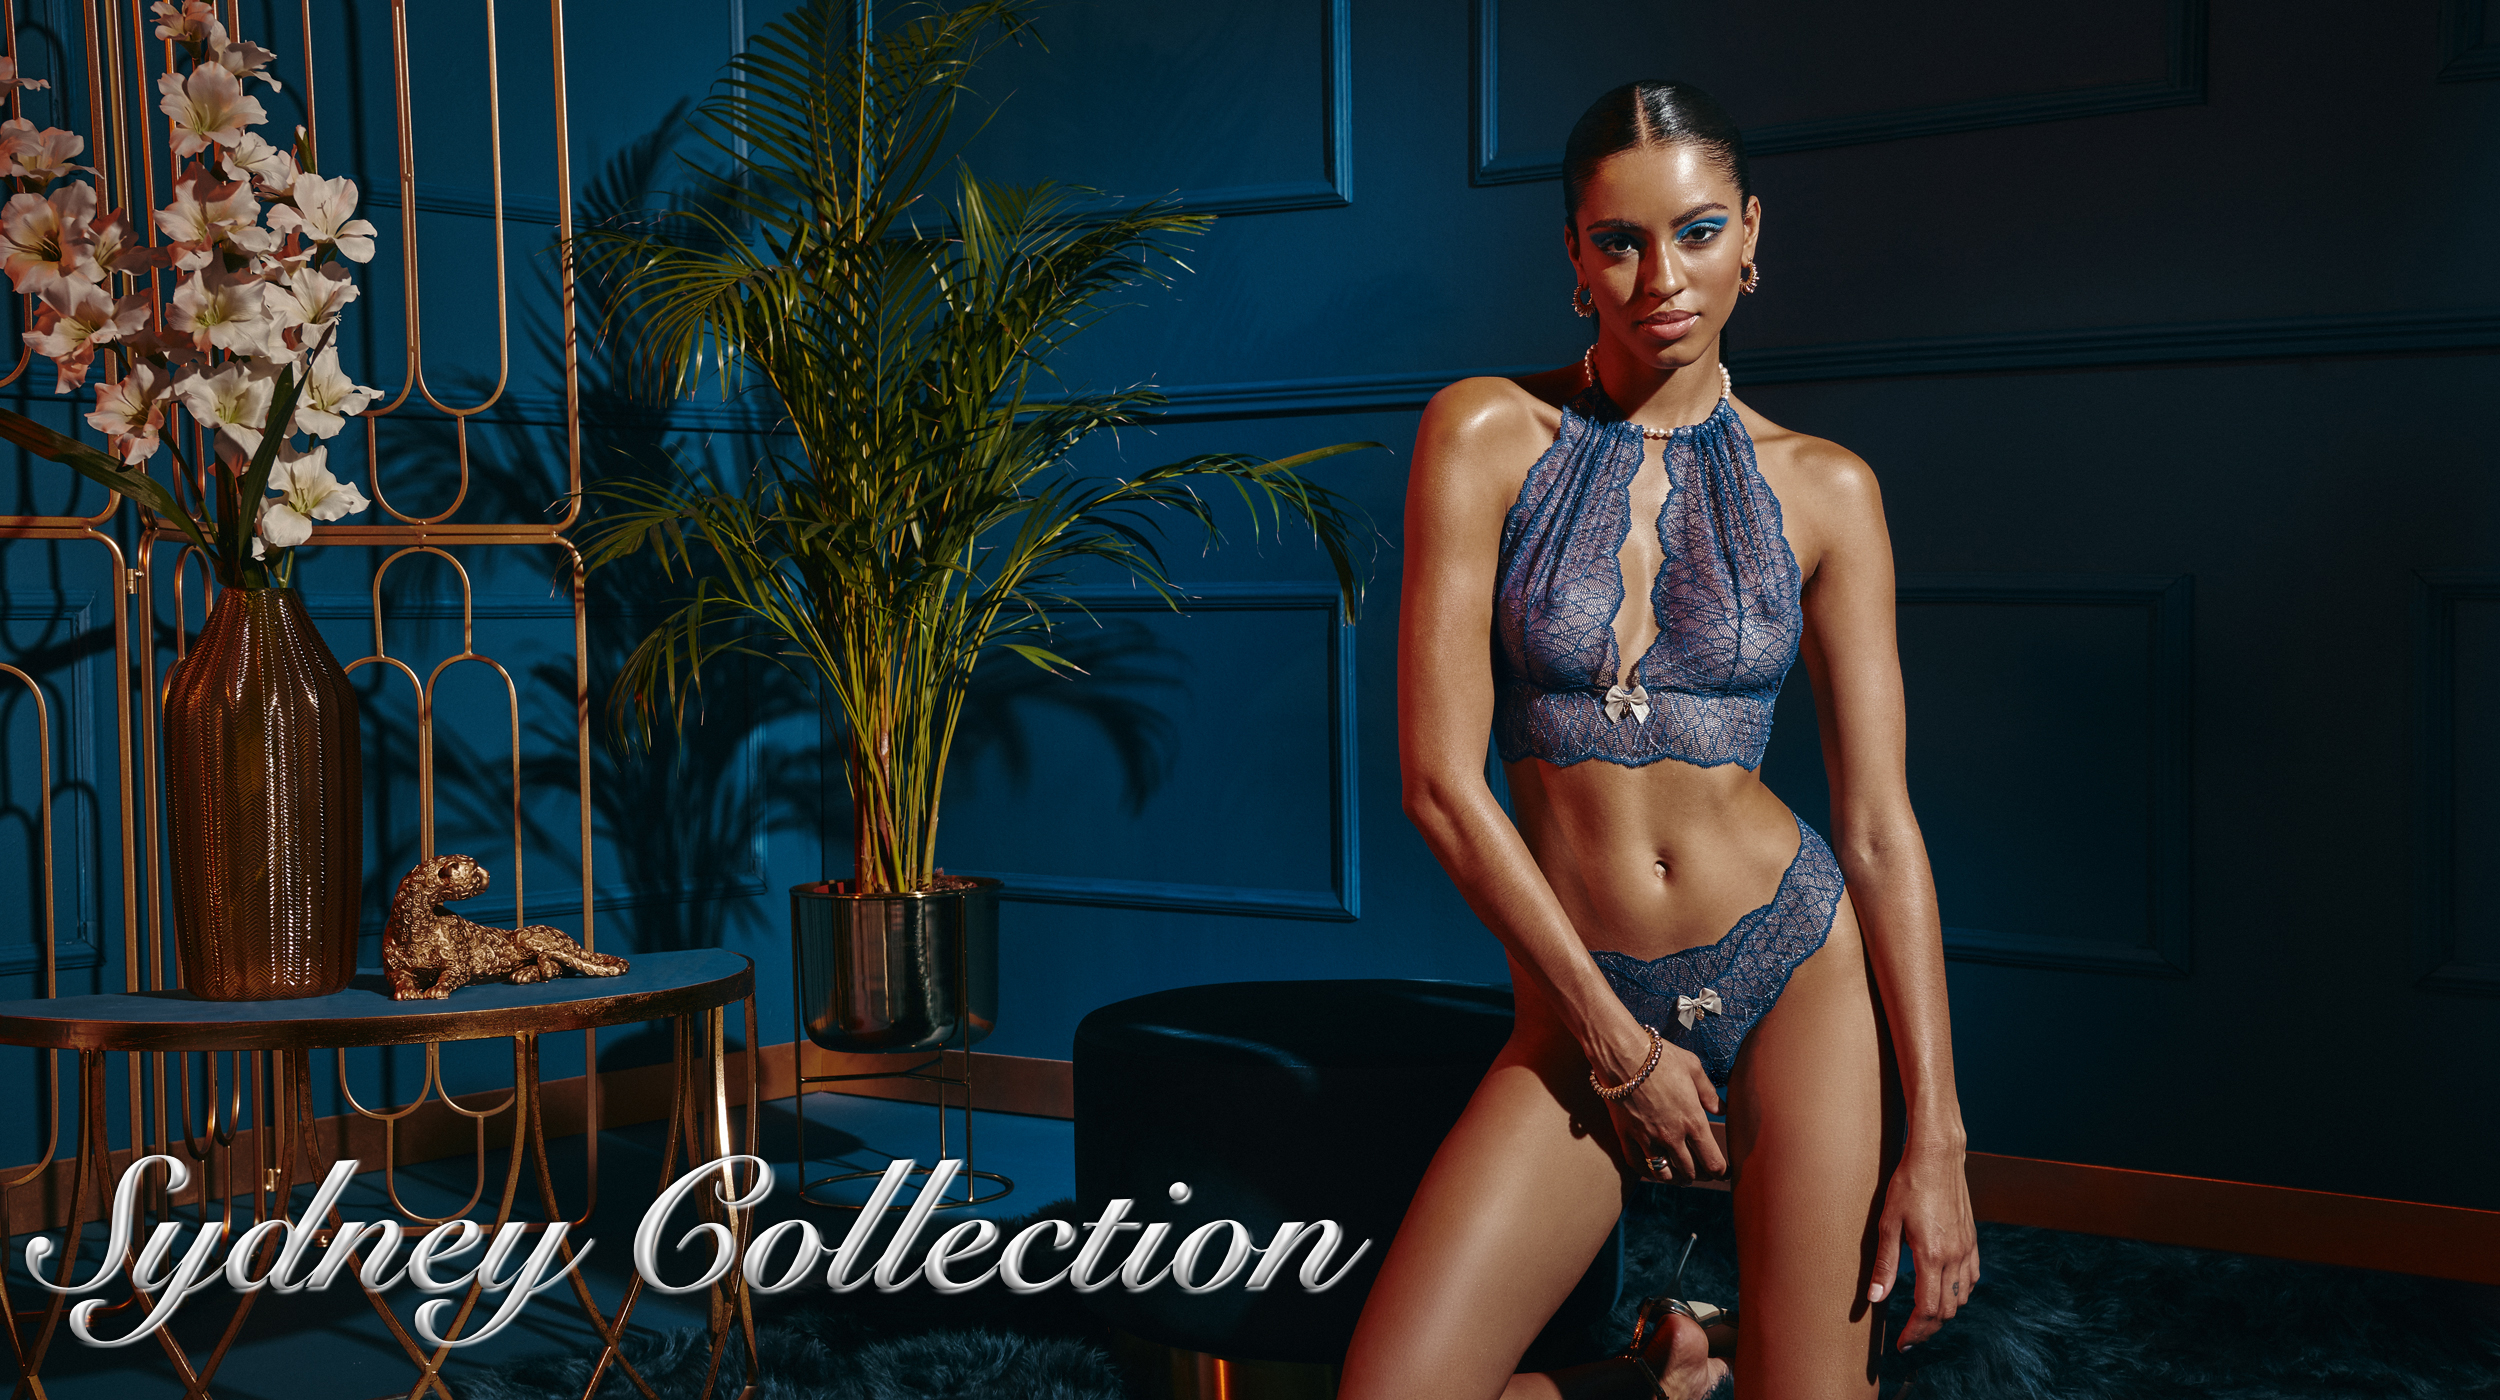 Sydney_Collection